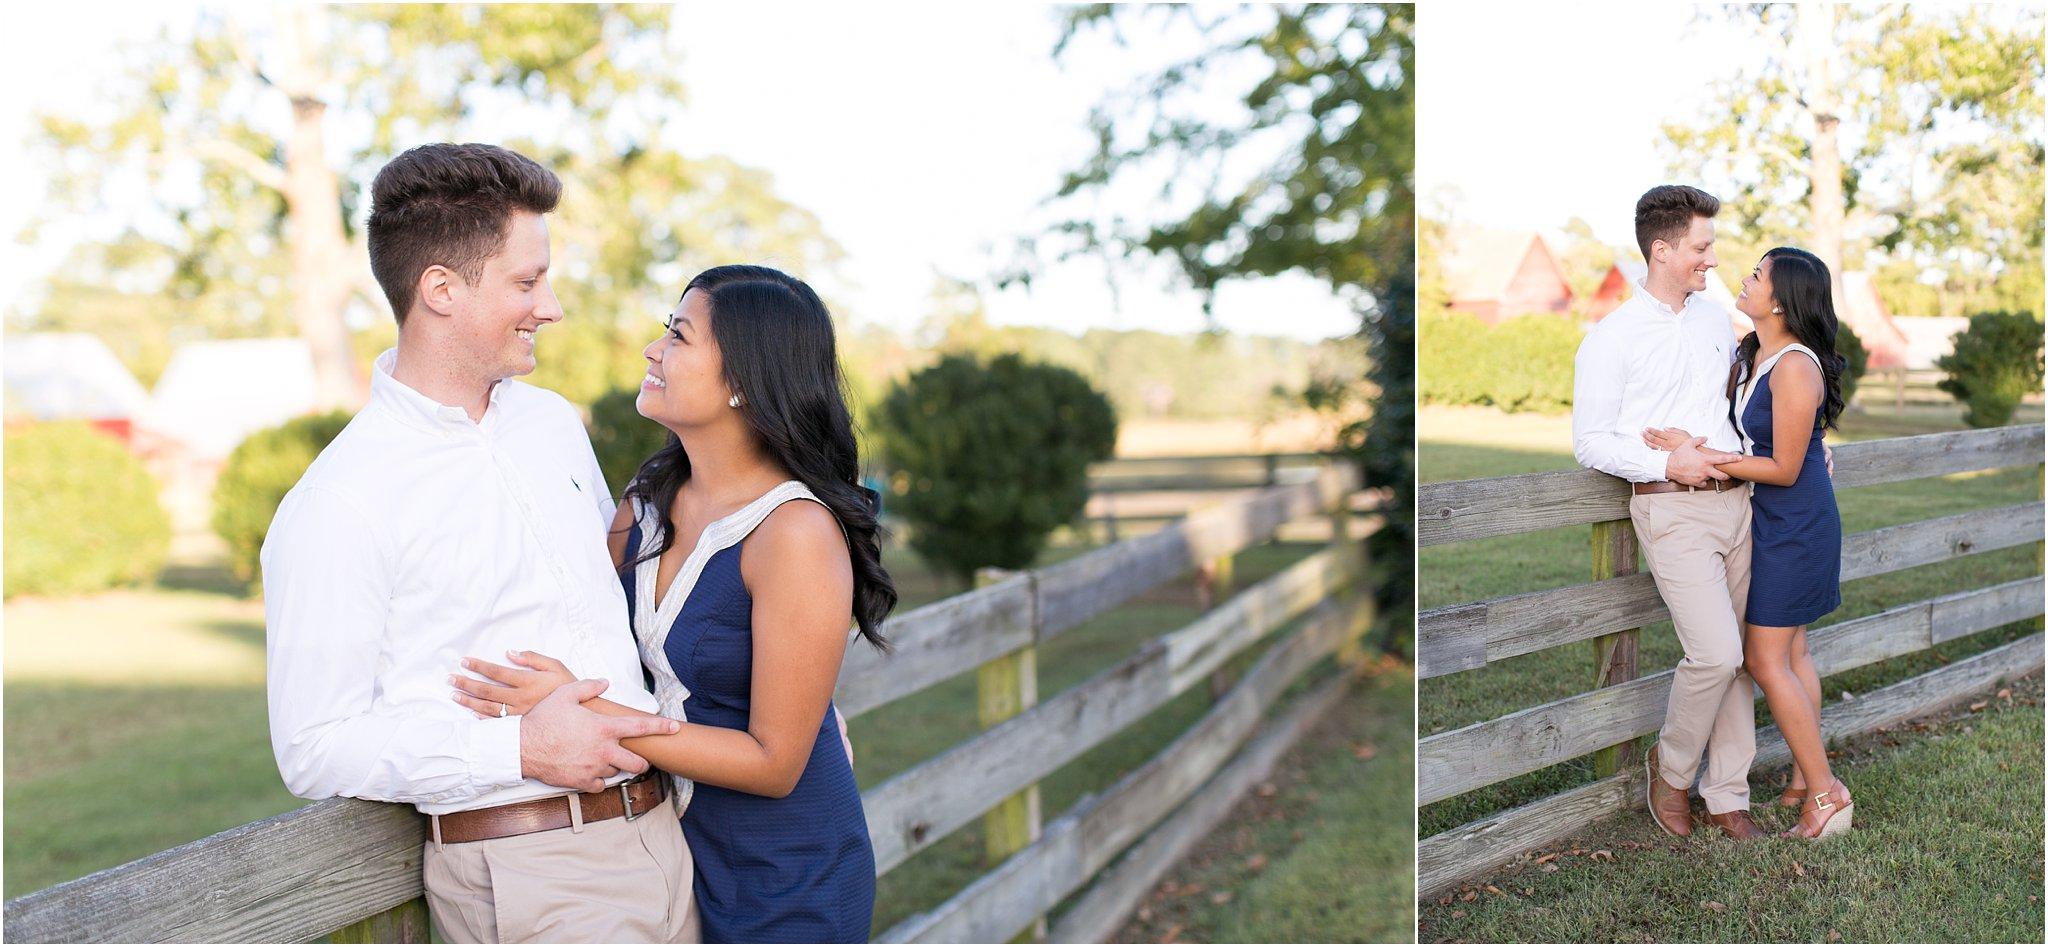 jessica_ryan_photography_virginia_smithfield_historical_downtown_engagement_portraits_candid_authentic_3722